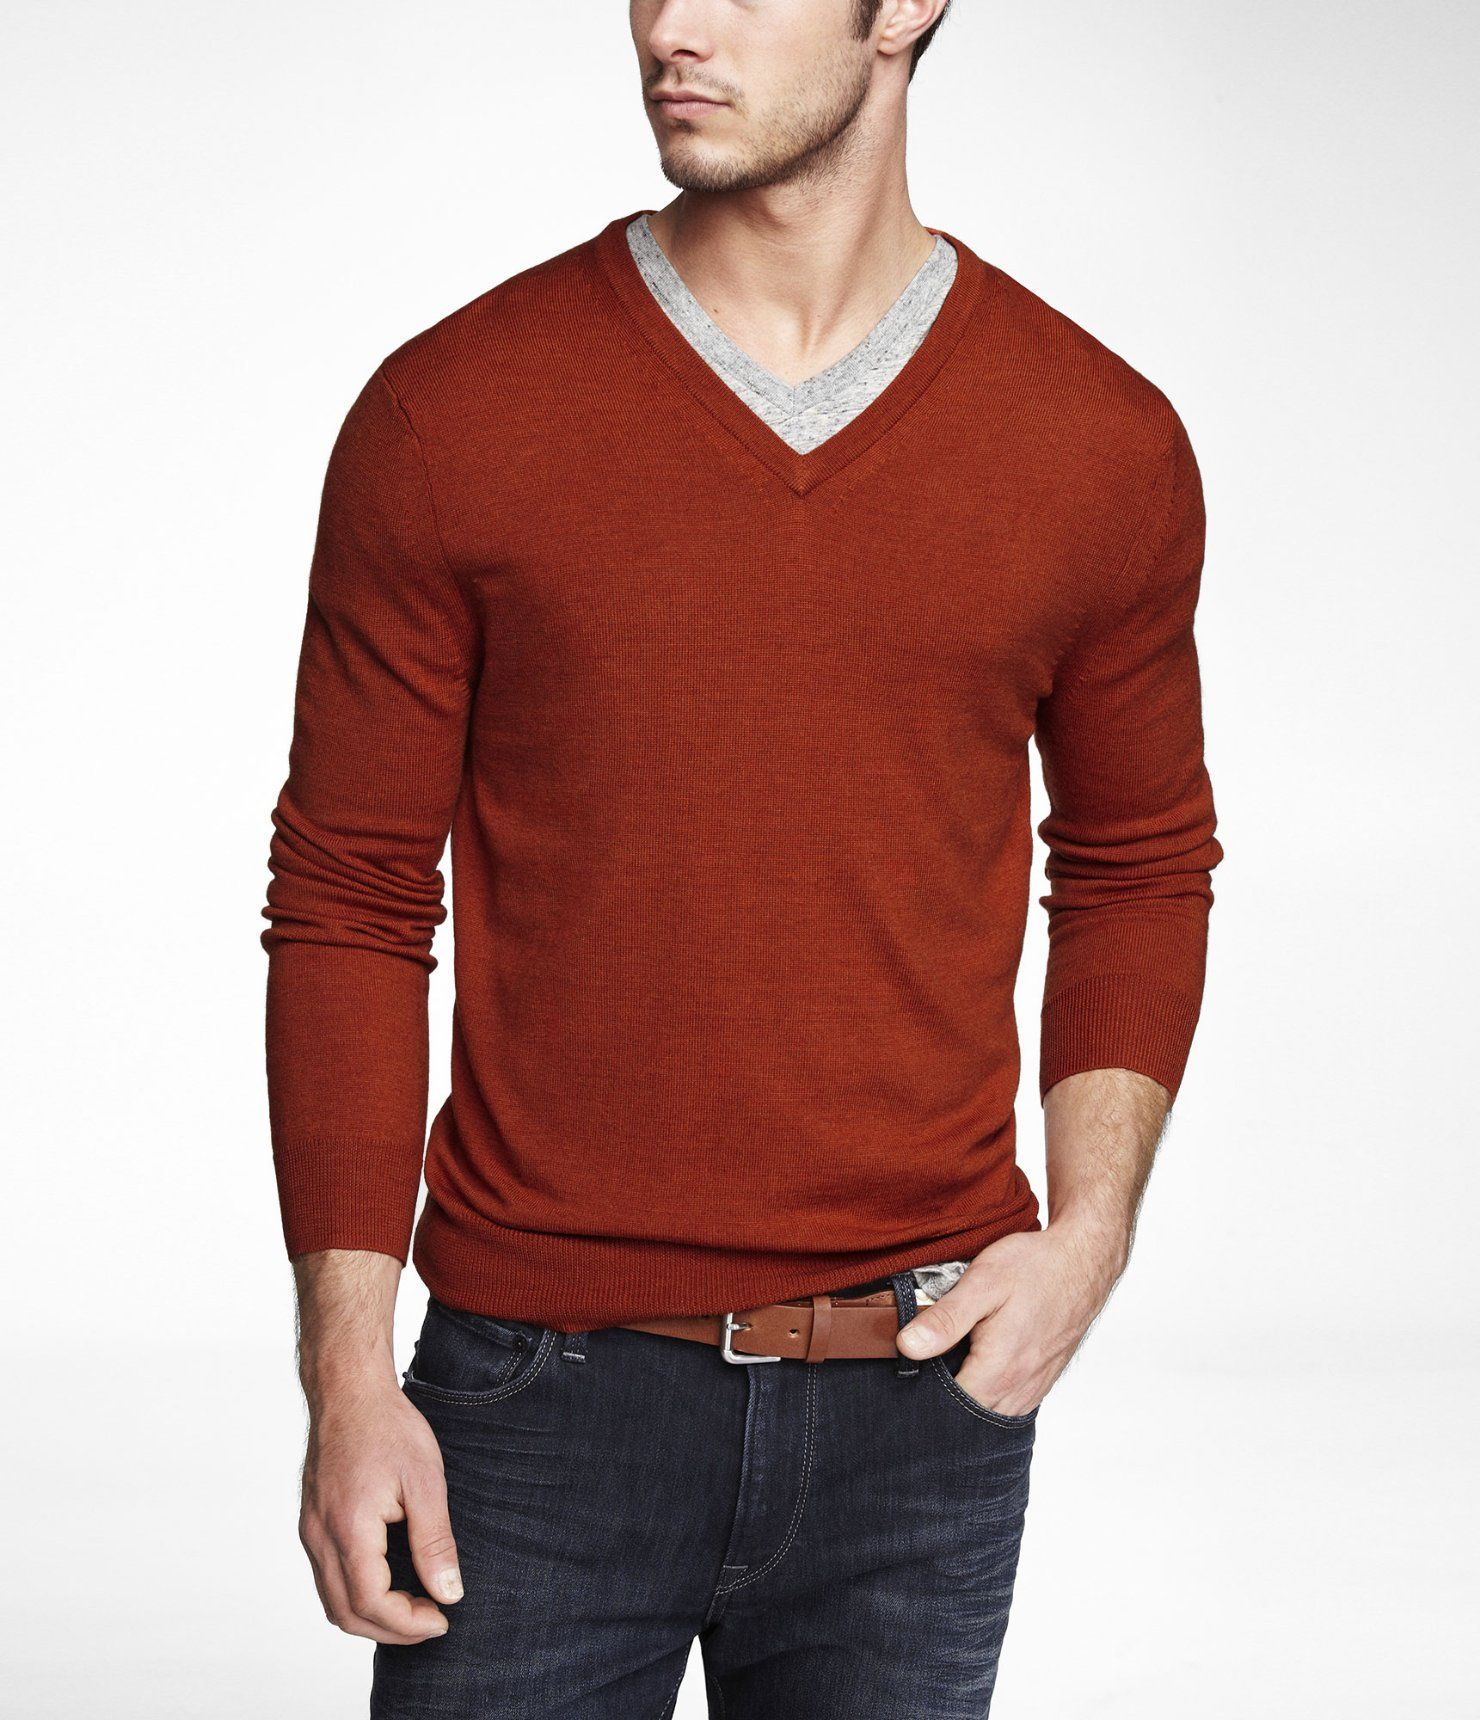 Mens Sweaters Shop Sweaters \u0026 Cardigans For Men